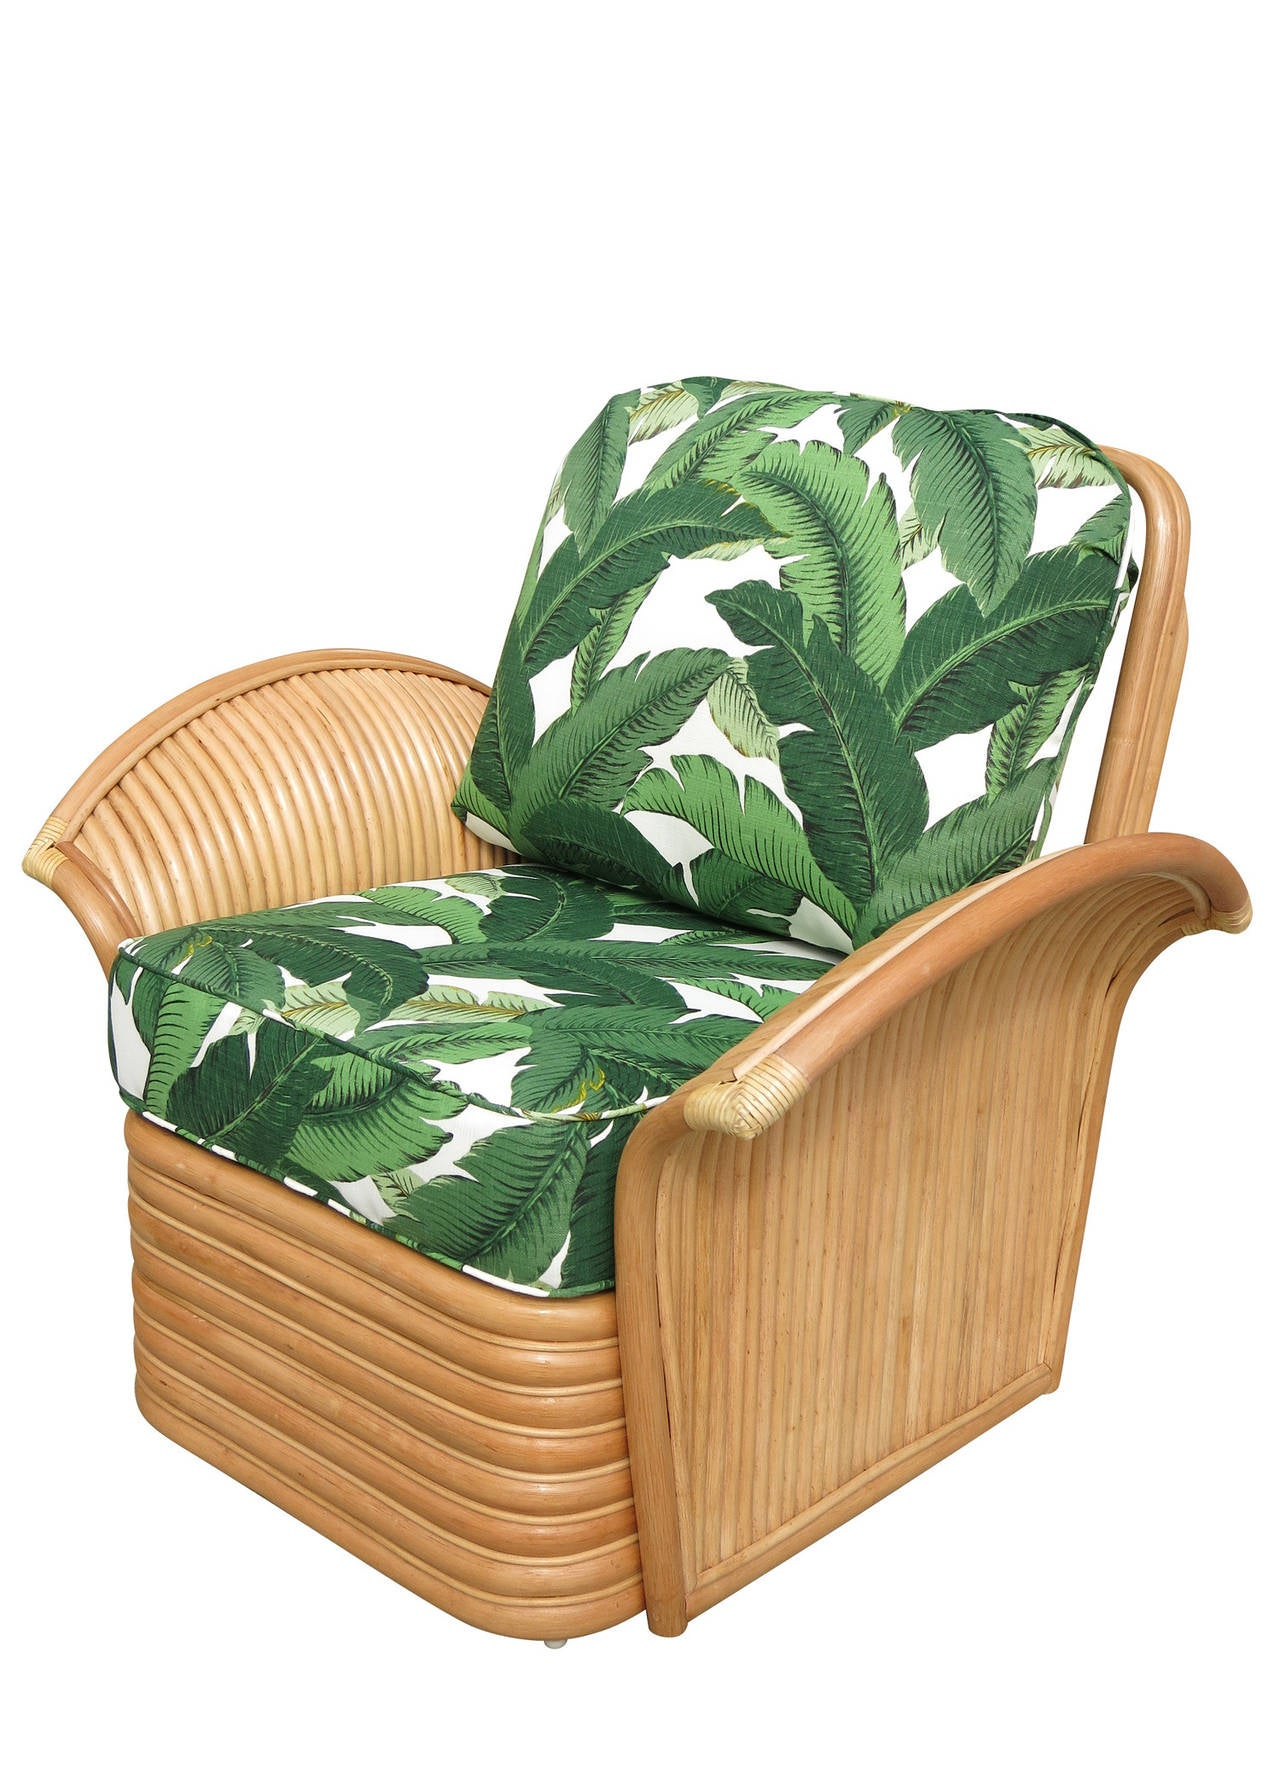 Restored Rattan Fan Arm Lounge Chair Ottoman Set For Sale at 1stdibs